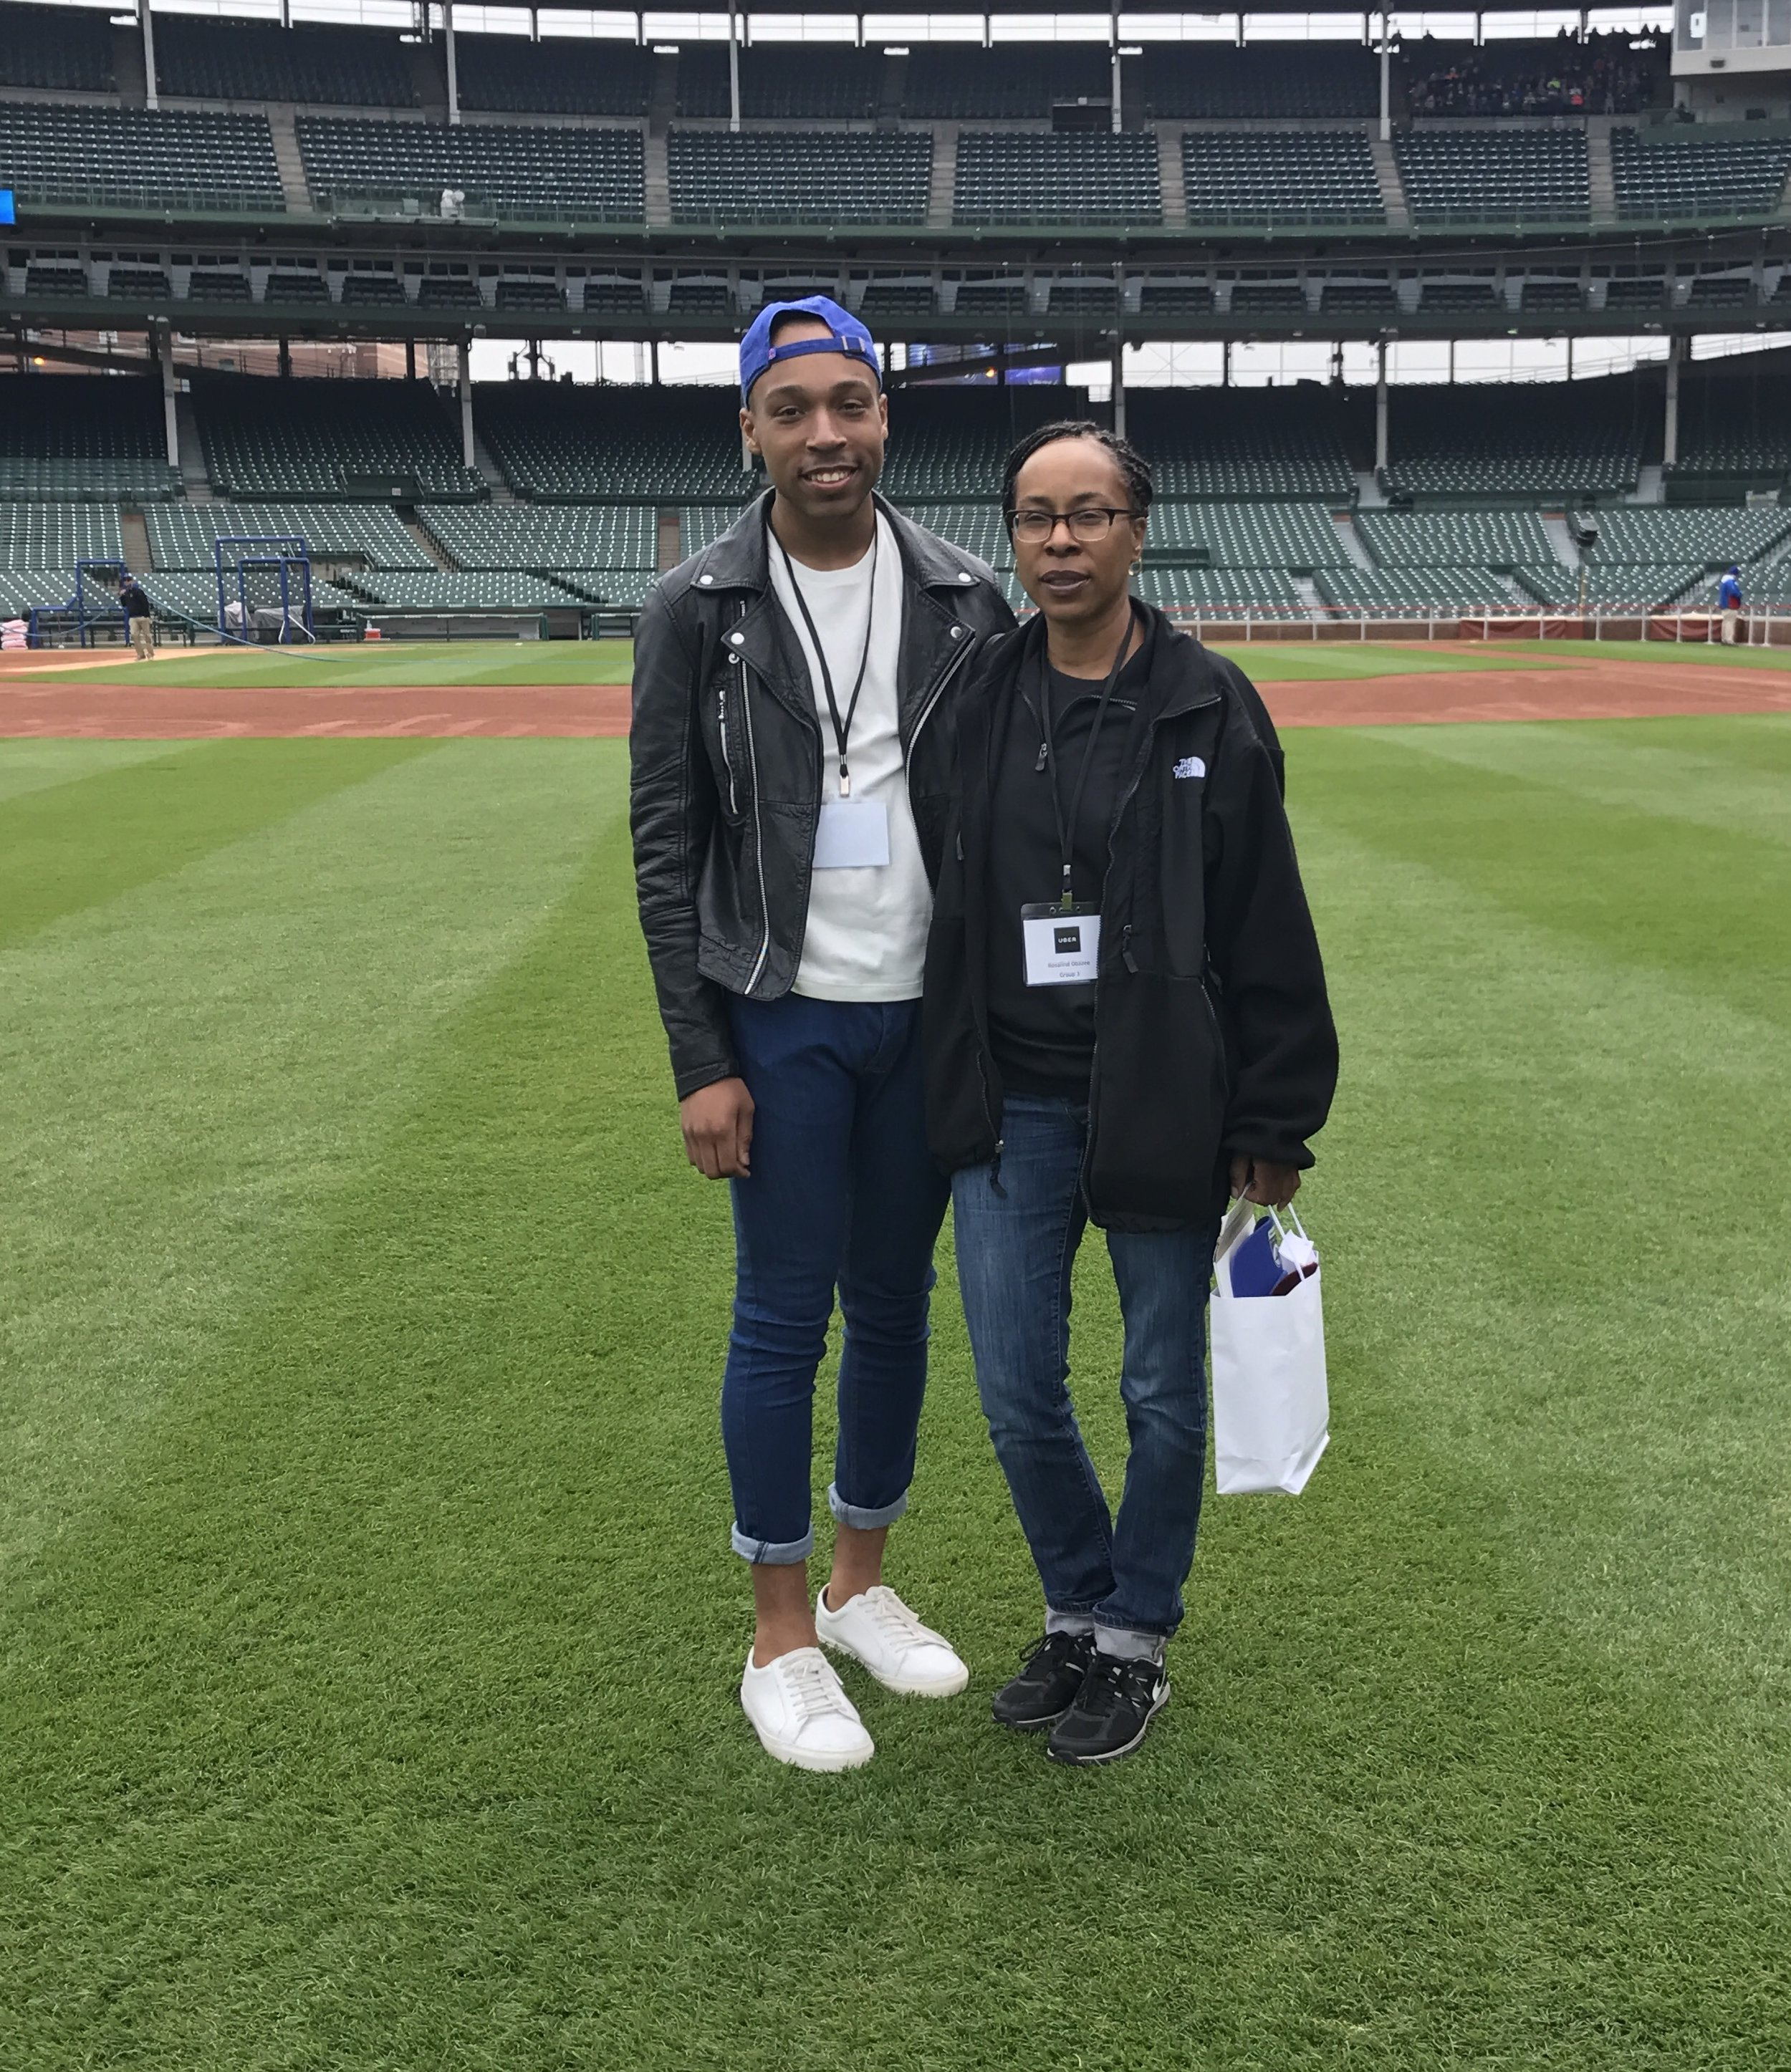 Here's an example of not standing out because I stragetigally wore blue jeans to attempt fitting in at Wrigley. I never wear blue jeans. This was the first time I had in years, and my mother was shook.